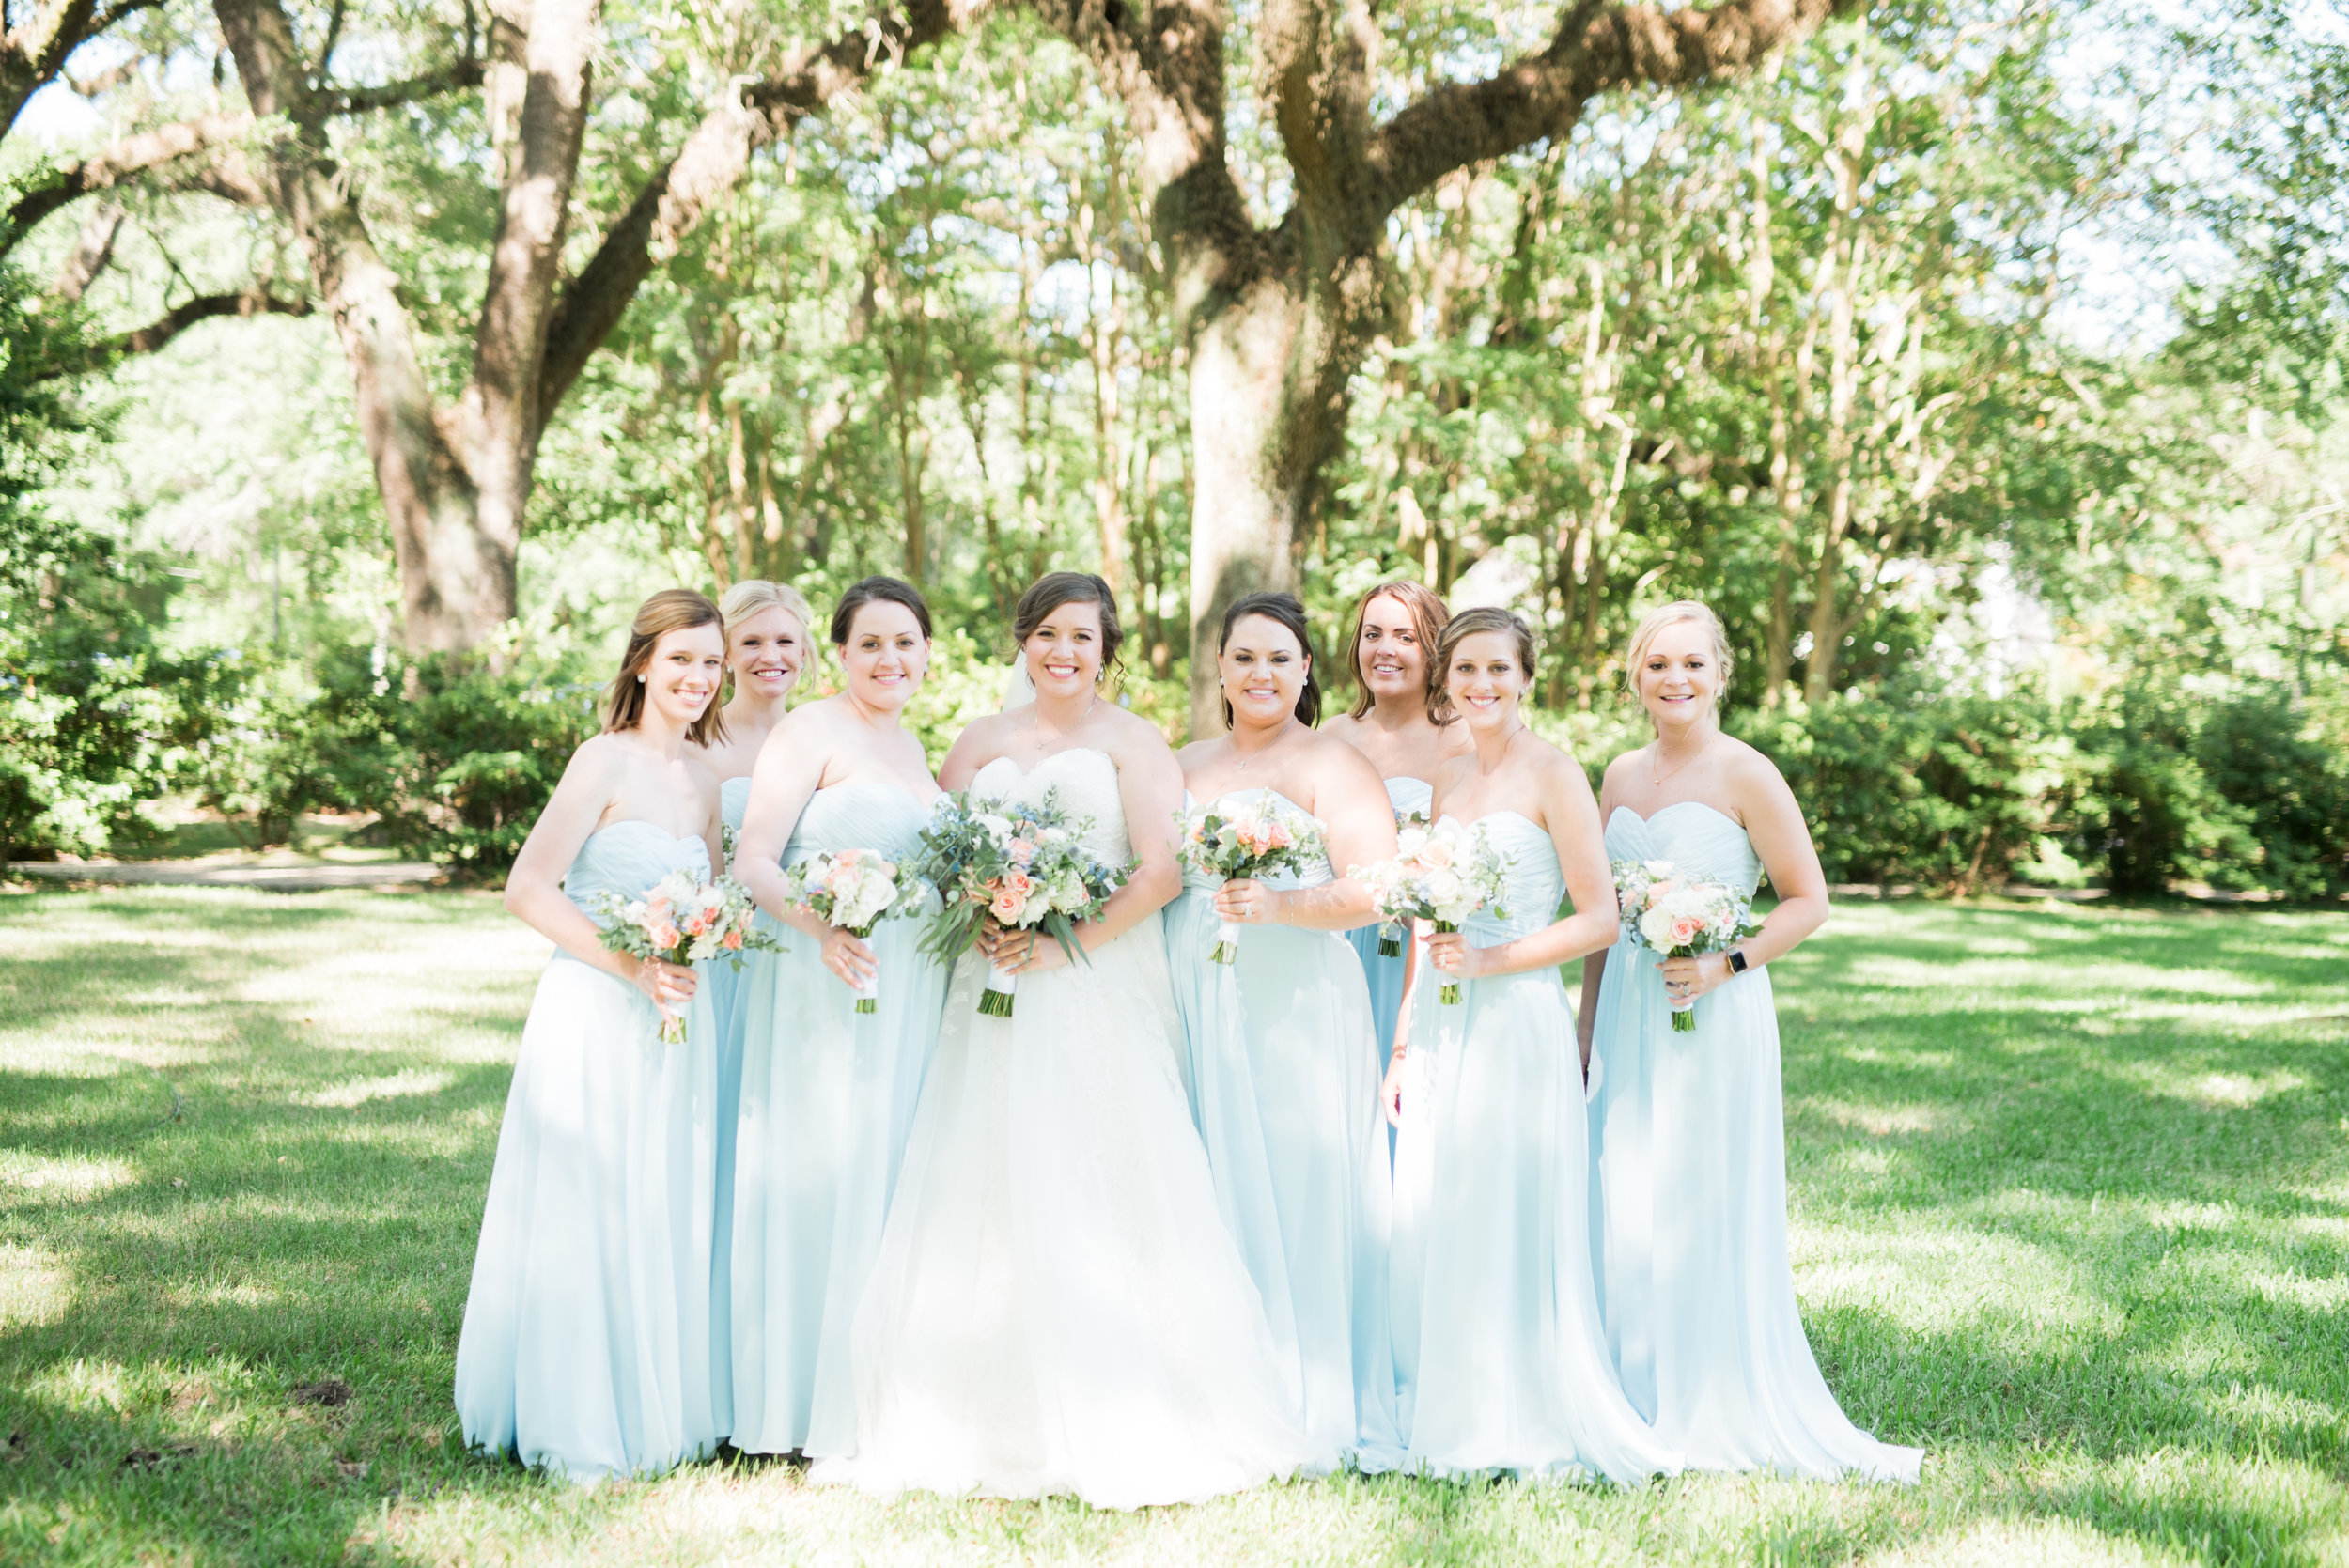 Alyssa and Heath Wedding Bridesmaids at the Bragg Mitchell Mansion in Mobile, Alabama on May  25th, 2019